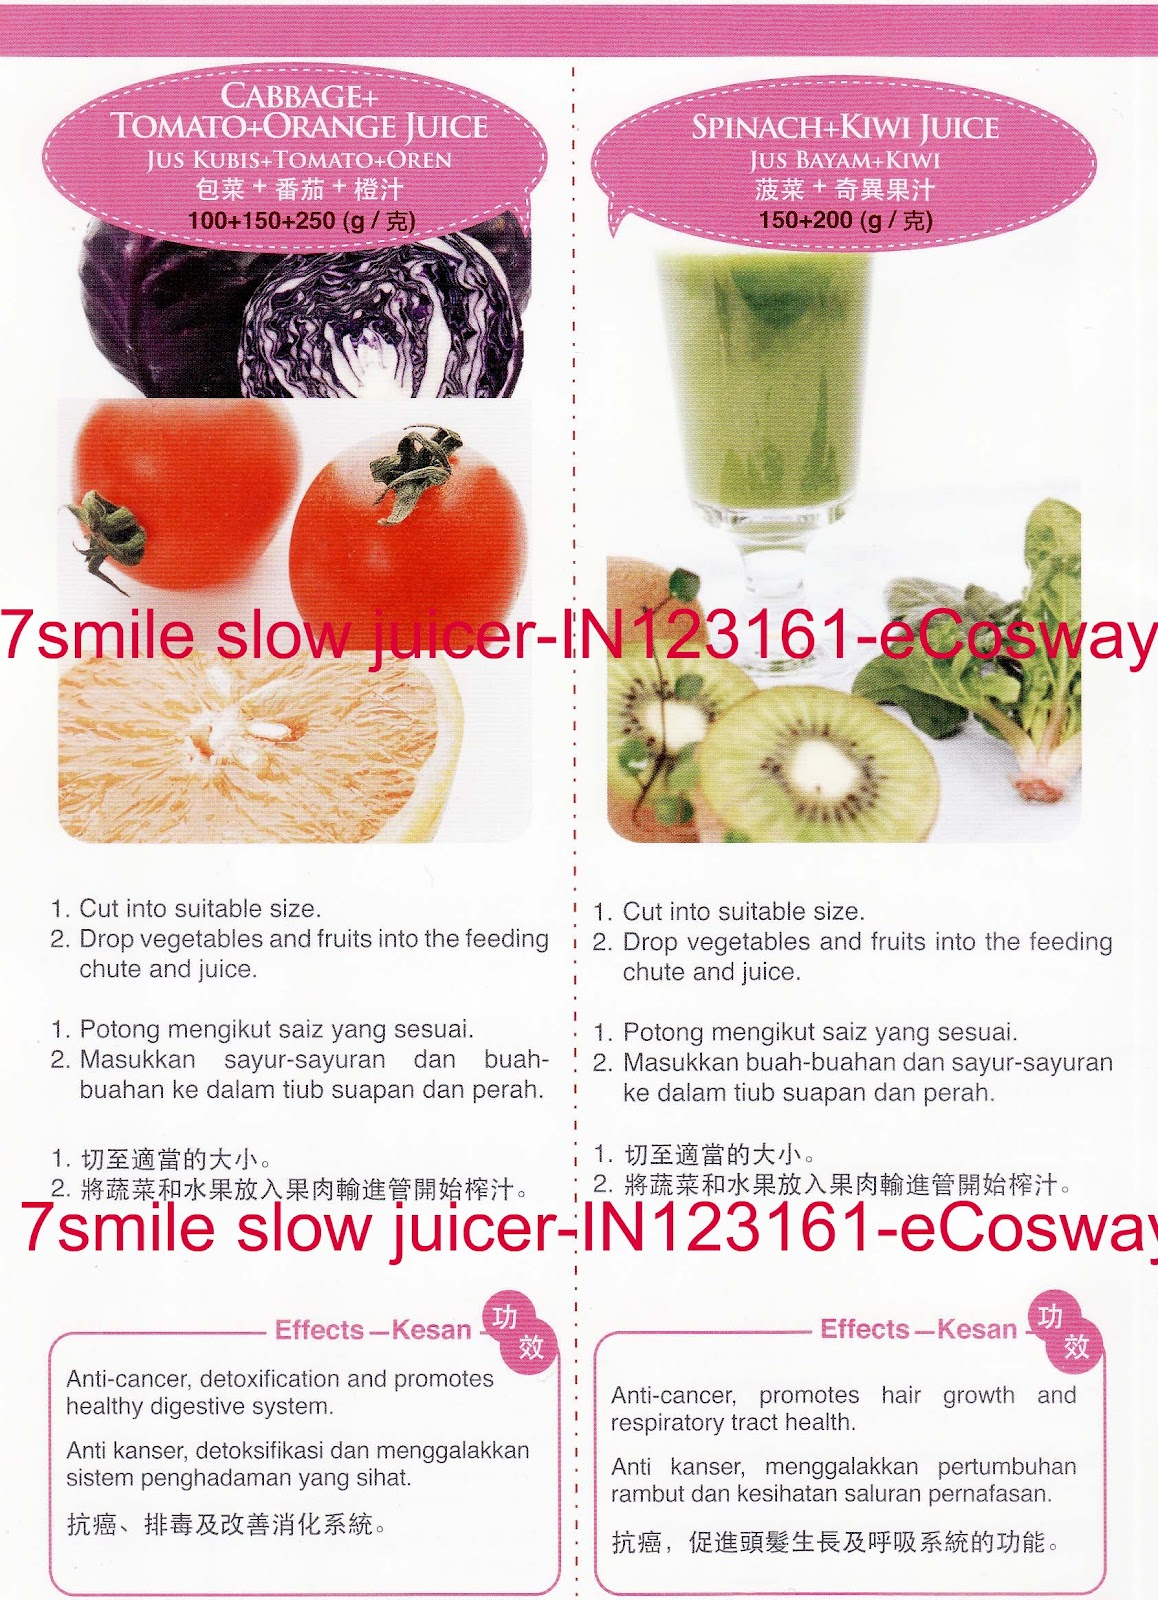 7 Smile Slow Juicer